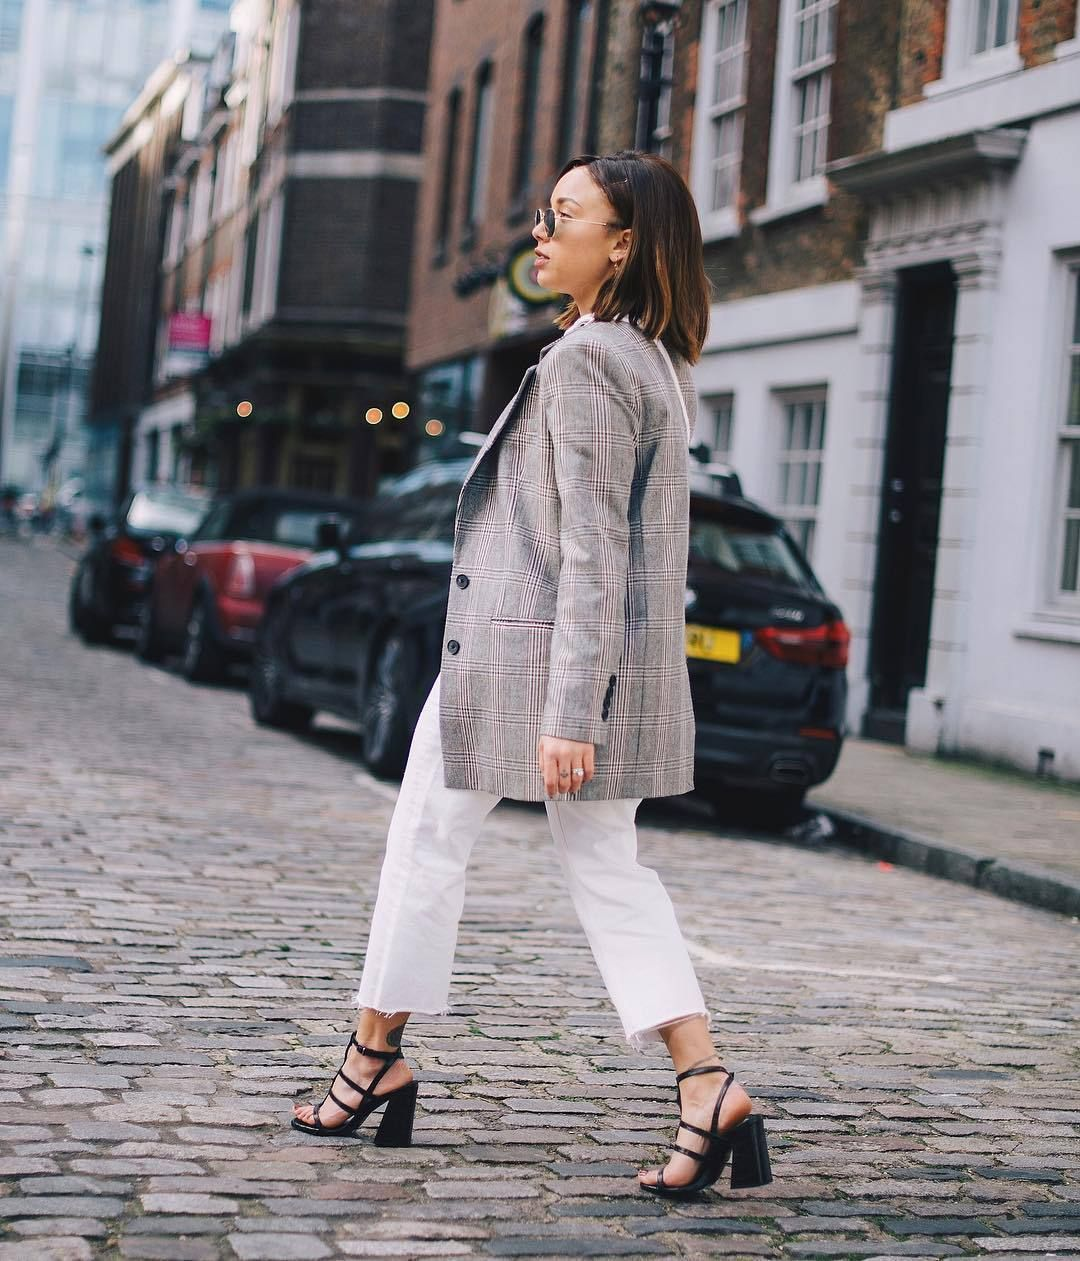 Get the jeans for 40£ at m.topshop.com – Wheretoget